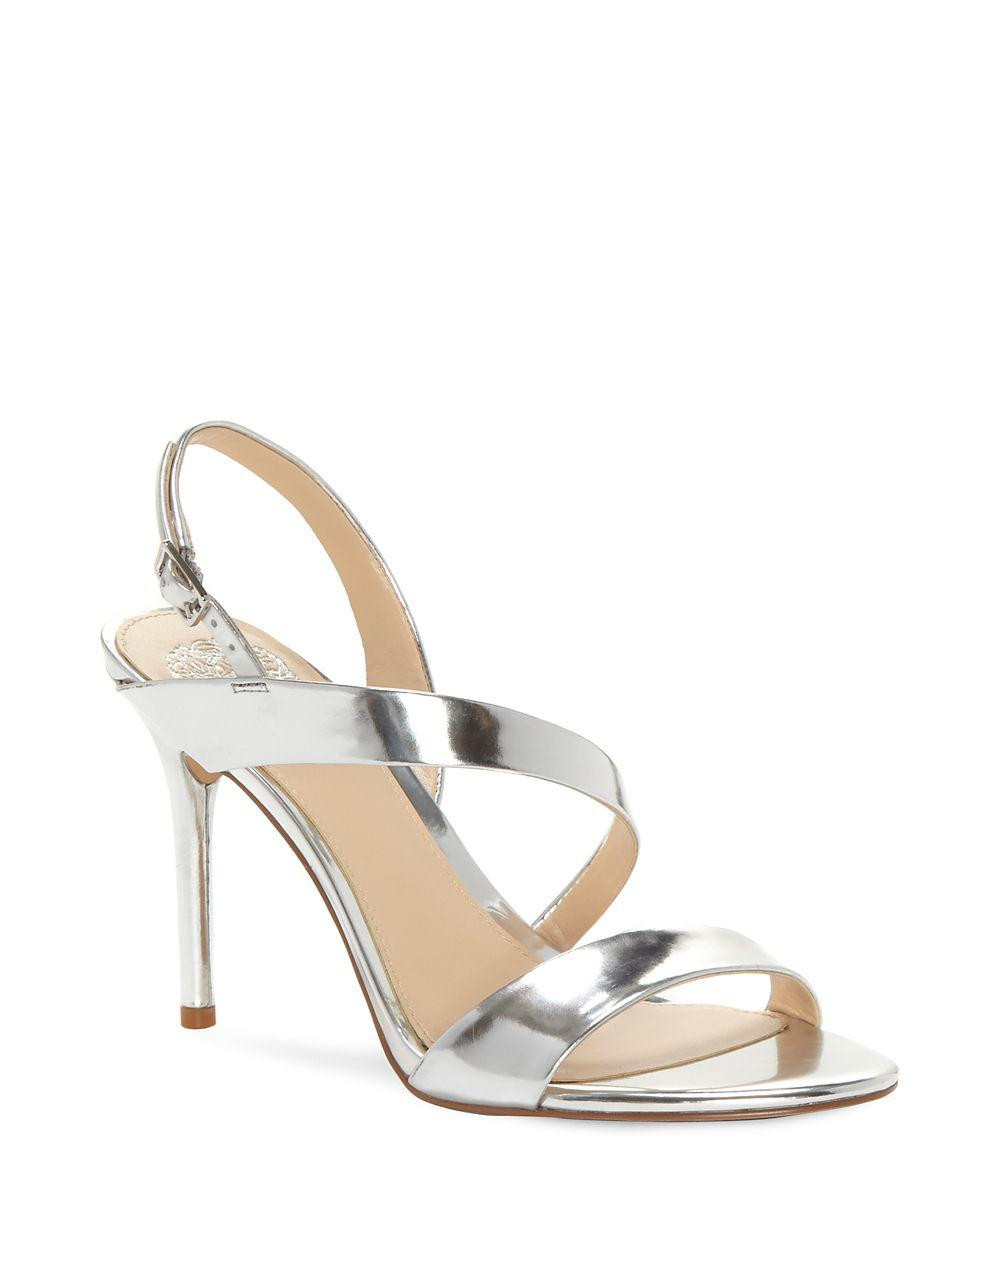 Vince Camuto Costina Metallic Leather Strappy Dress Sandals qsAiis